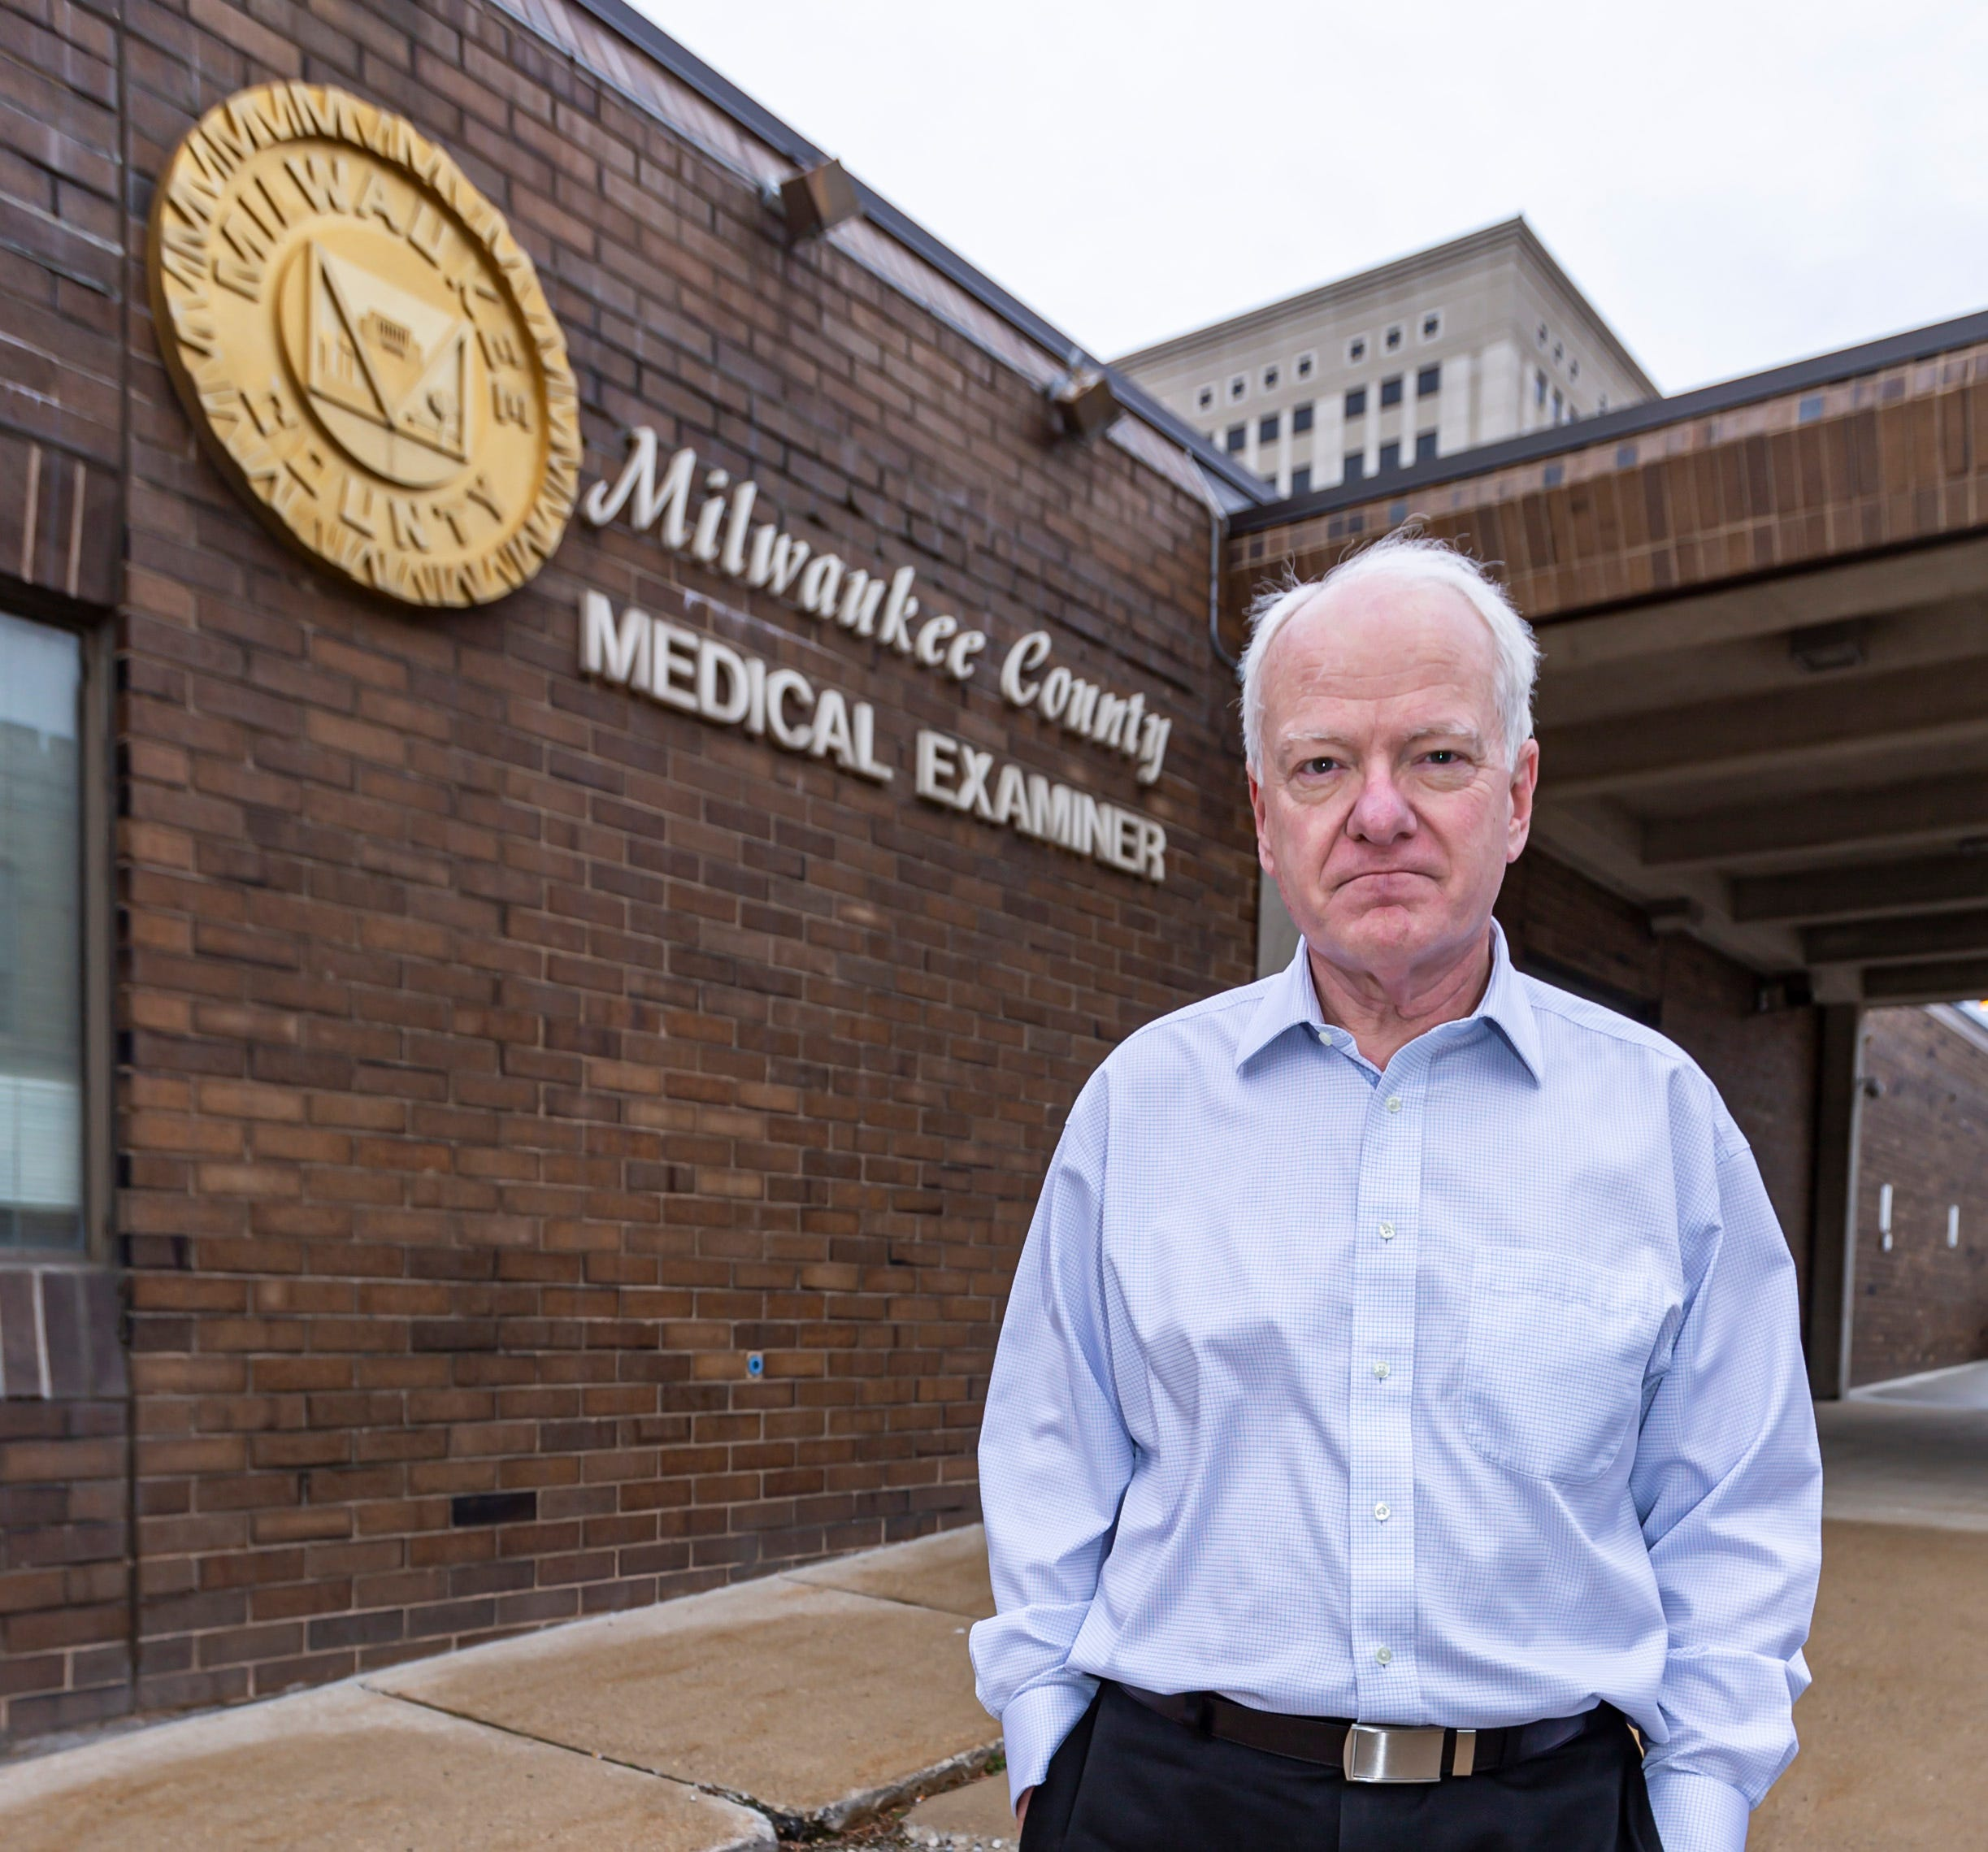 Dr. Brian Peterson, chief medical examiner for Milwaukee County, is pictured outside the Milwaukee County Medical Examiner's Office in 2020.